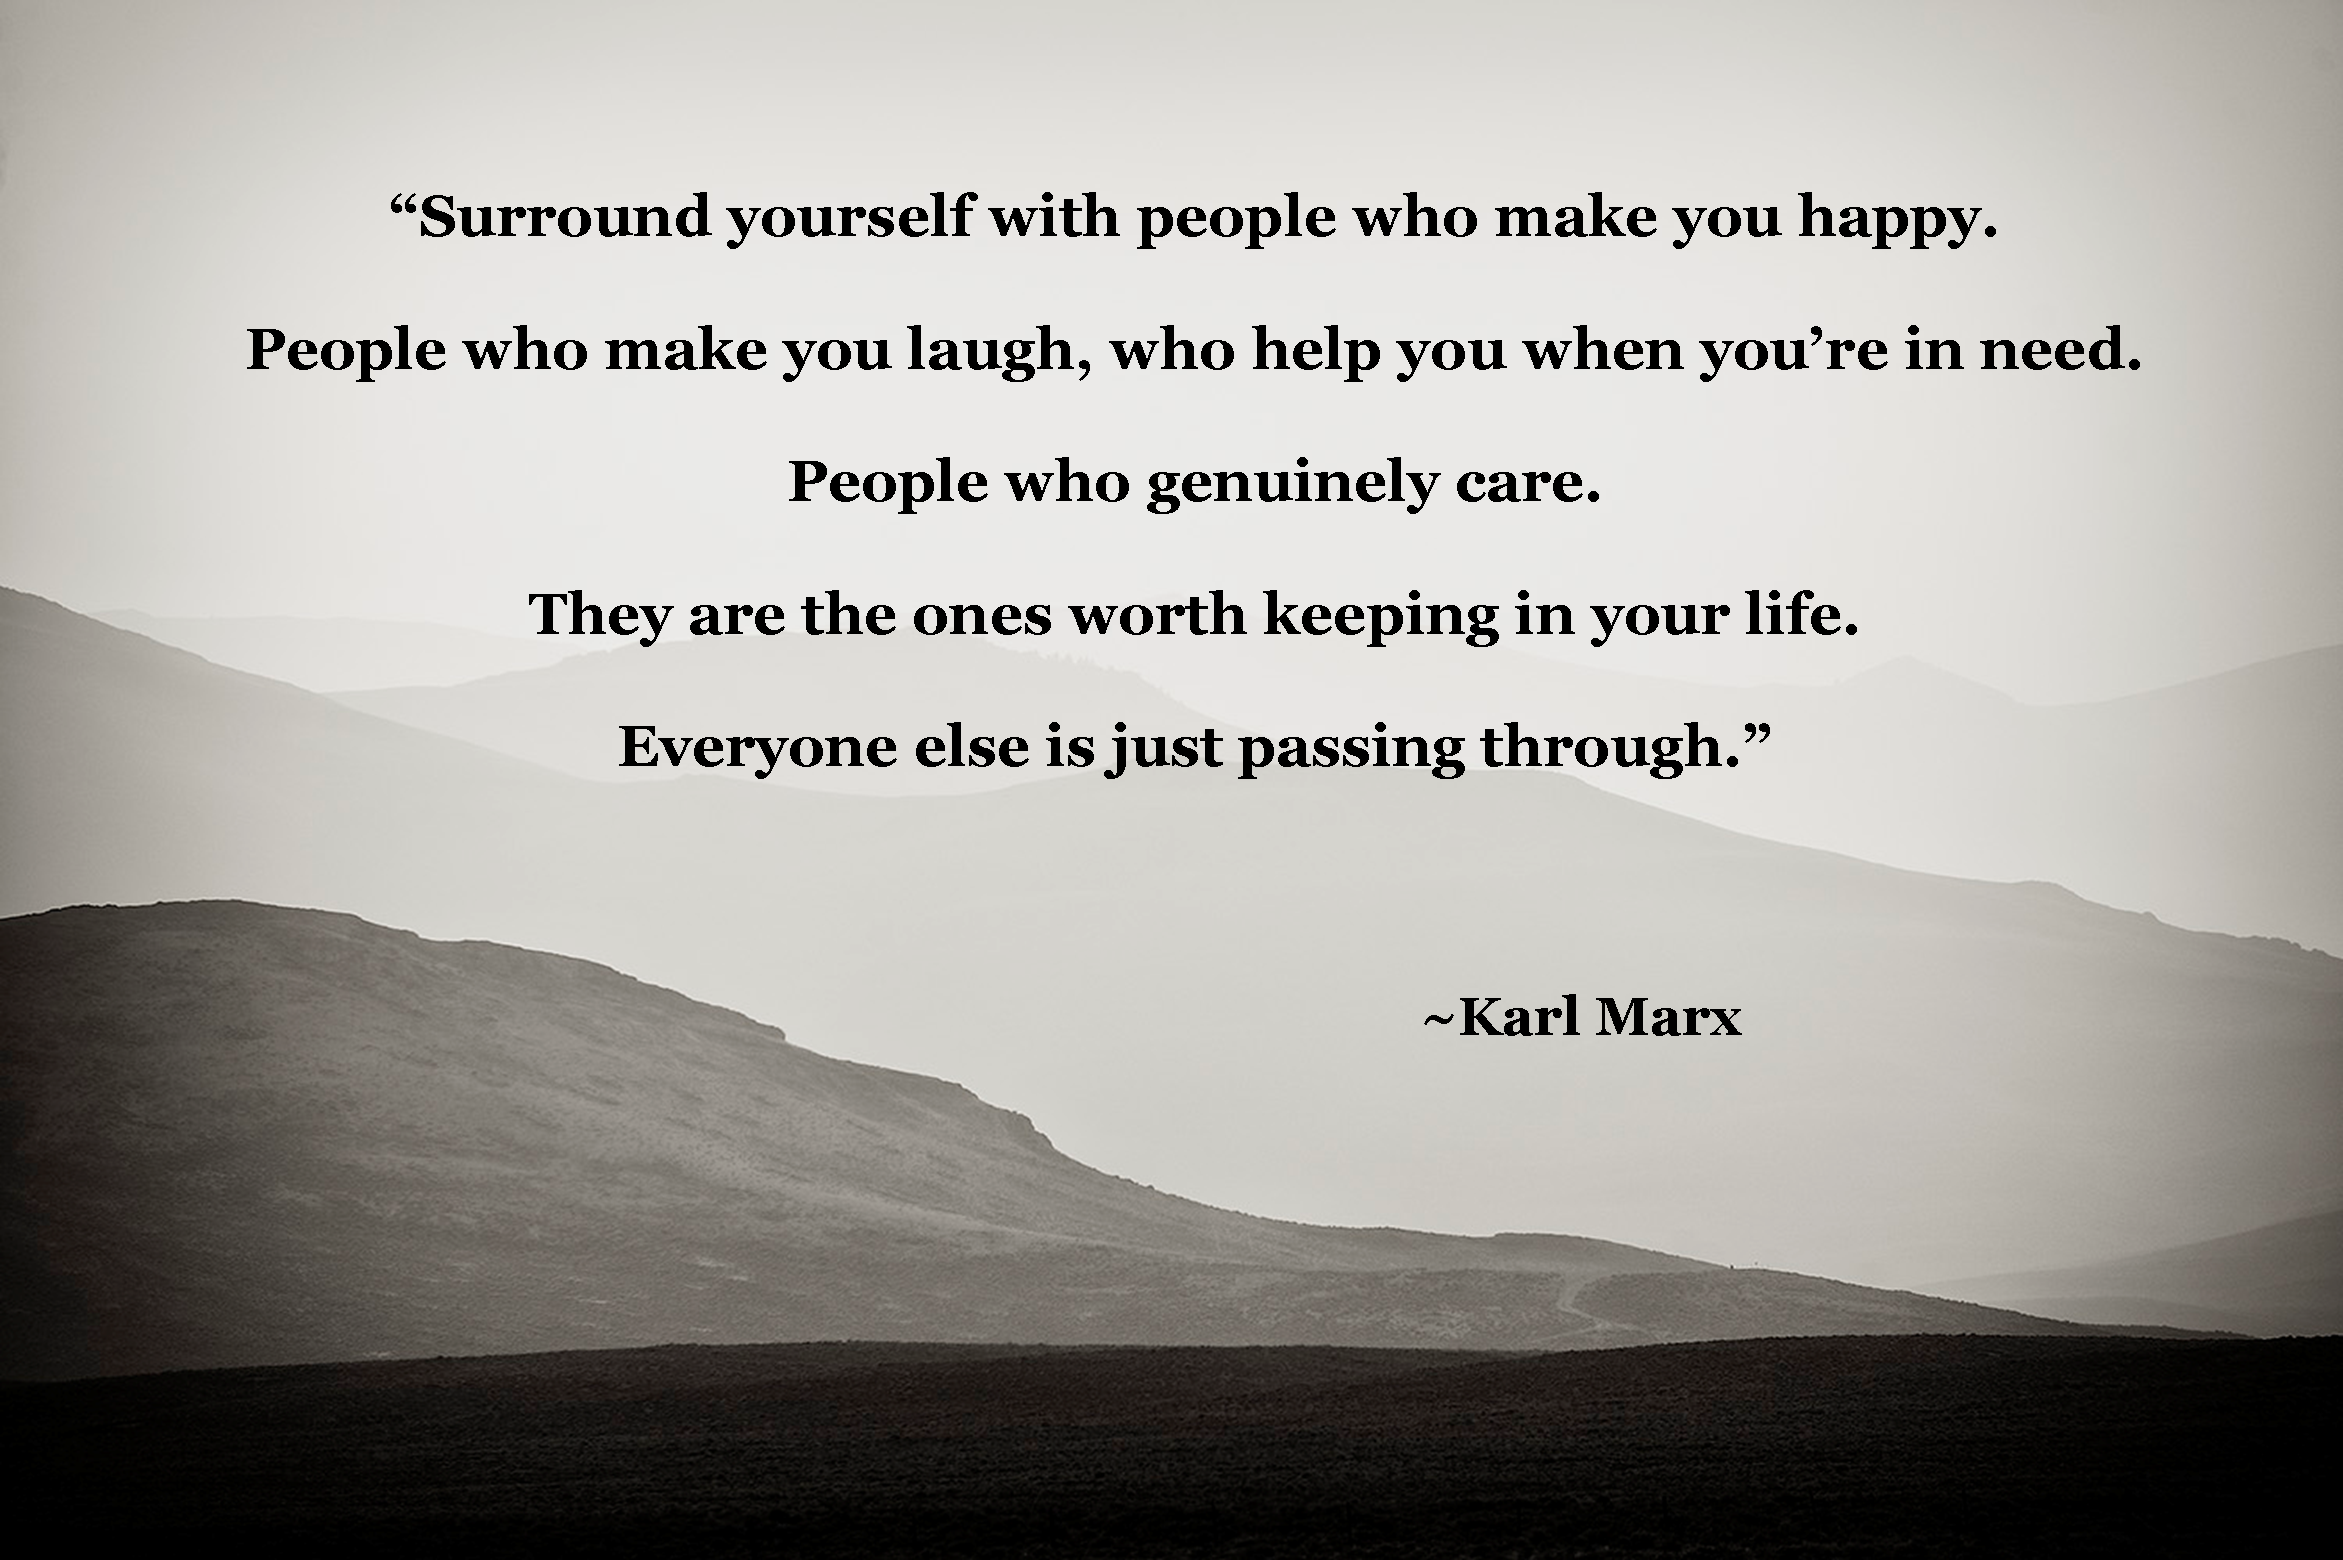 """Surround yourself with people who make you happy """" Karl Marx"""